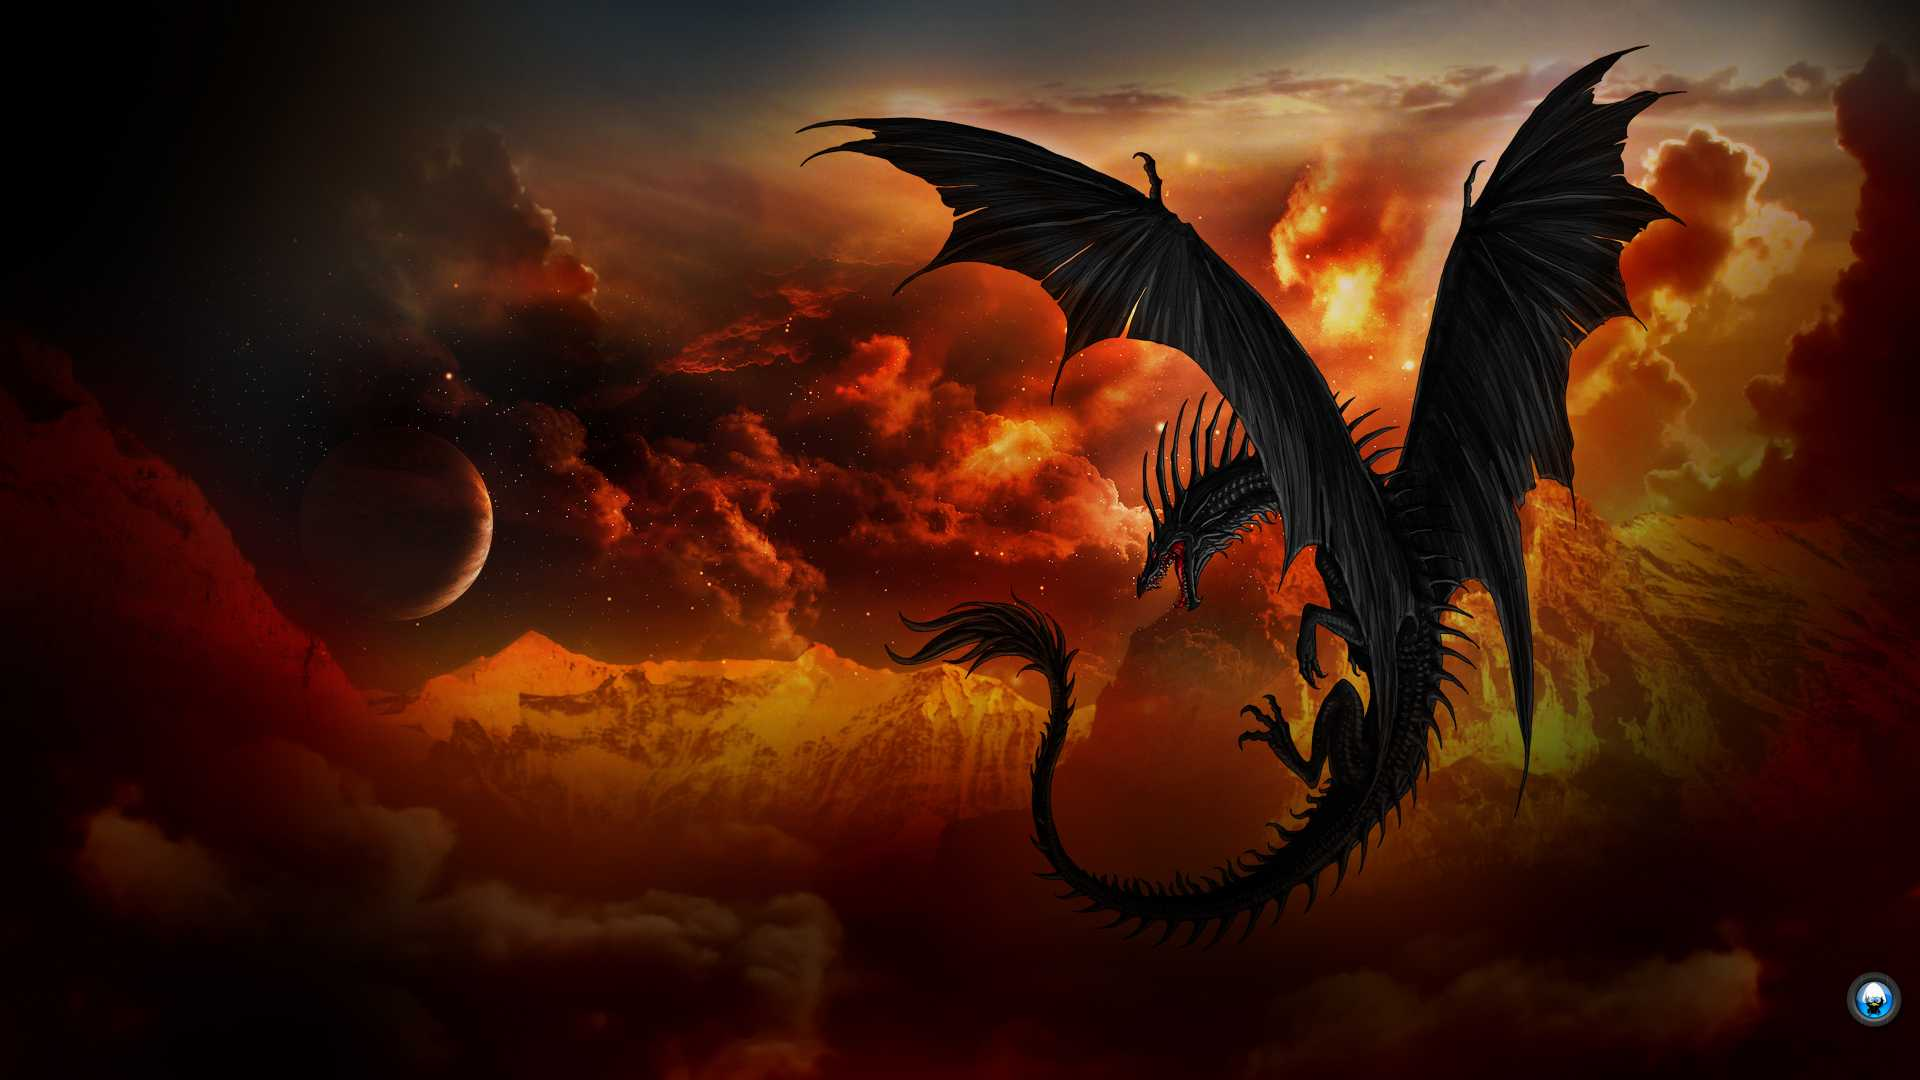 High Resolution Dragon Wallpapers - Top